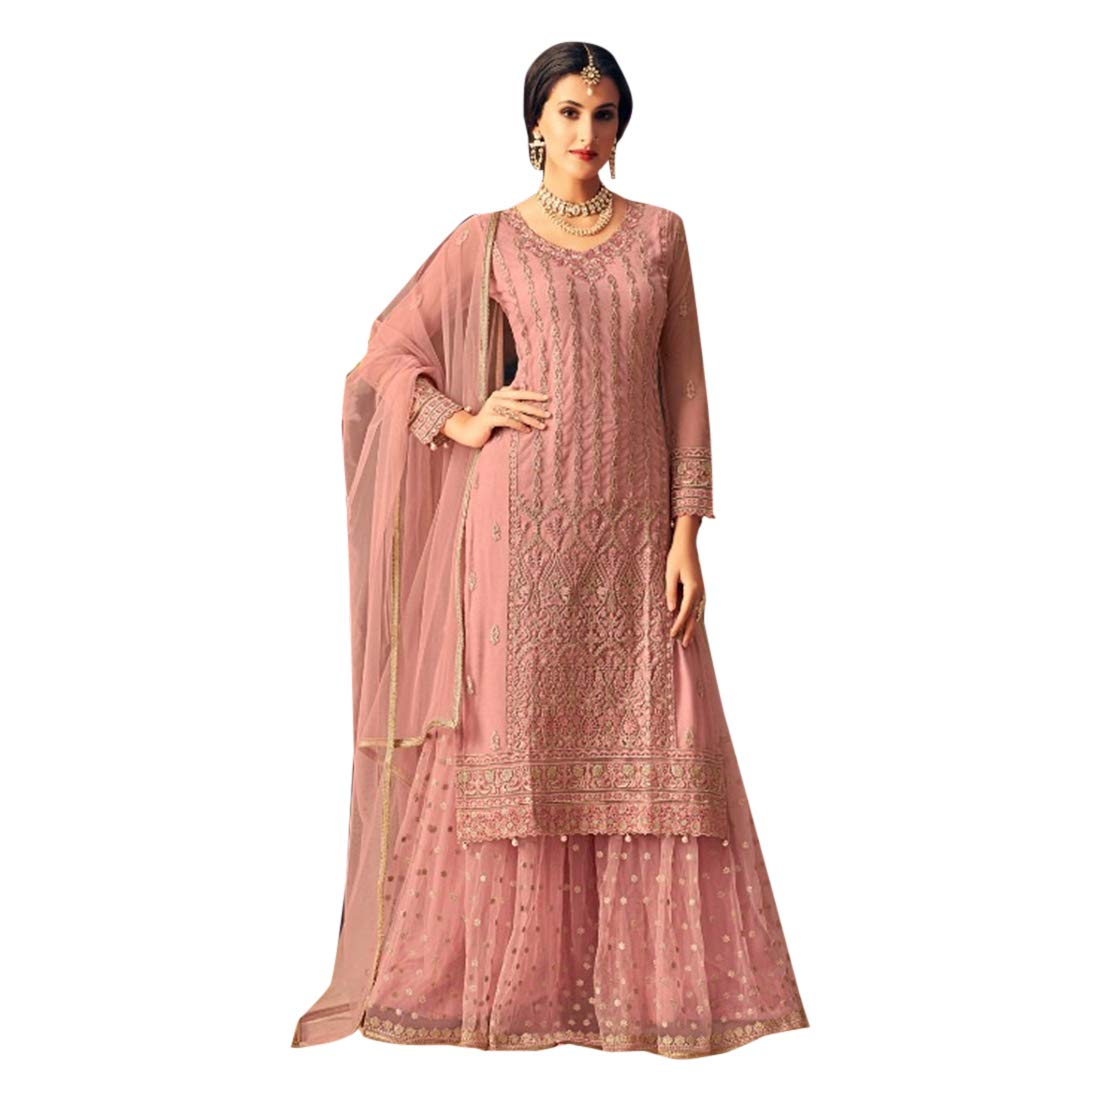 c90765aa8d Muslim Fashion Heavy Net Sharara Party Wear Suit 7254: Amazon.in: Clothing  & Accessories